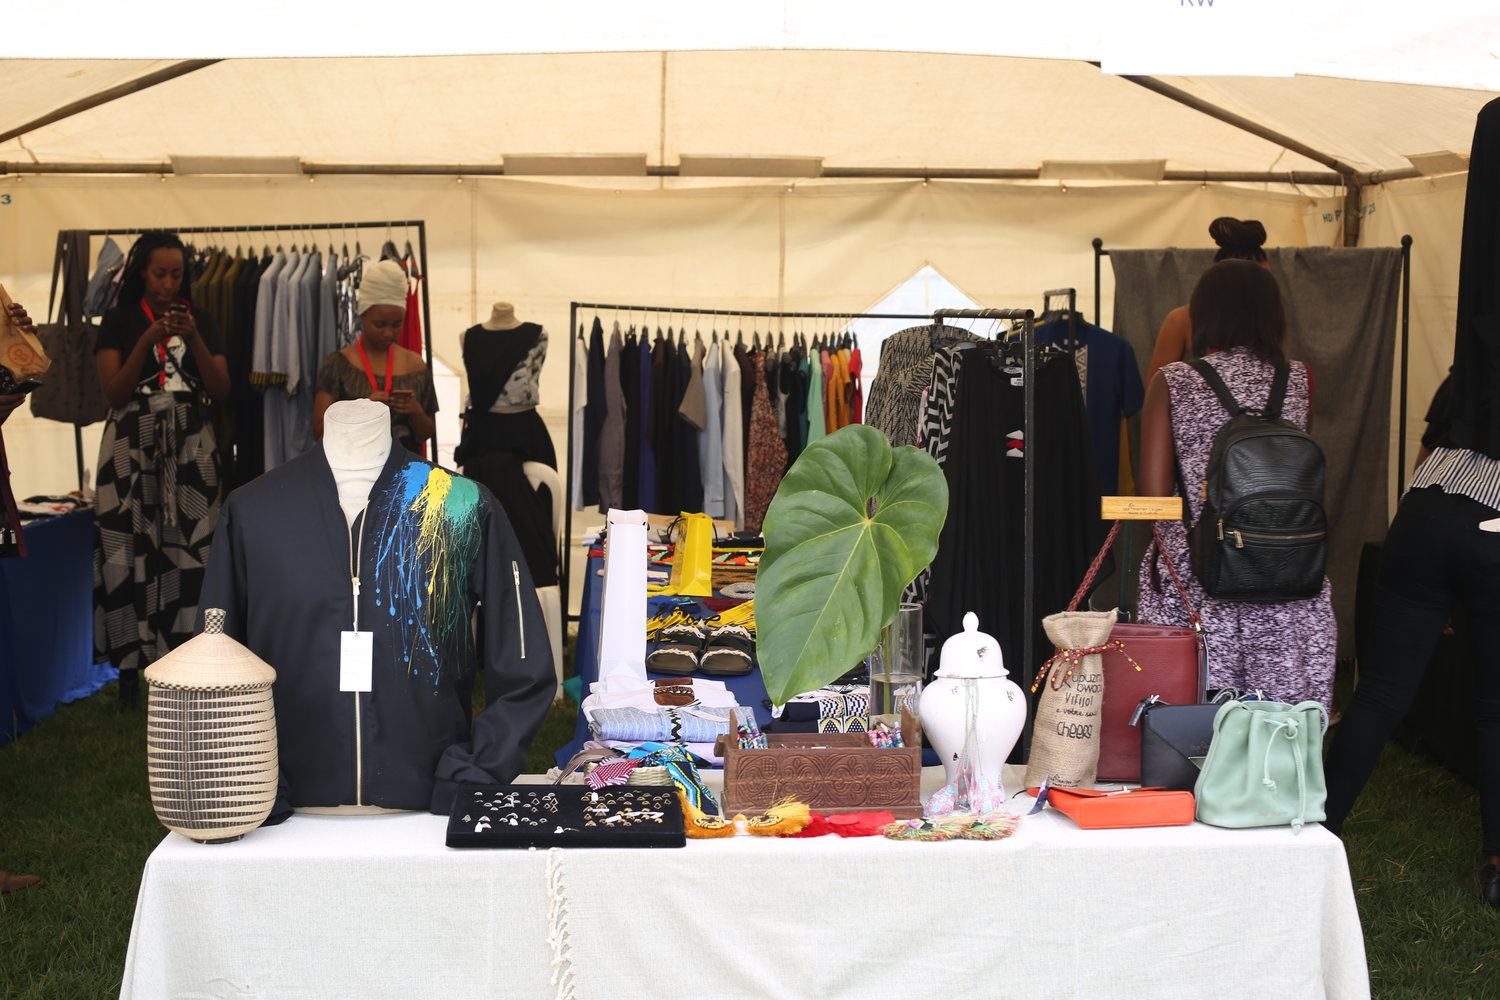 Heva Supports Made In Rwanda Fashion Brands And Sponsors 100 Students To Attend Top Fashion Workshop In Kenya Heva